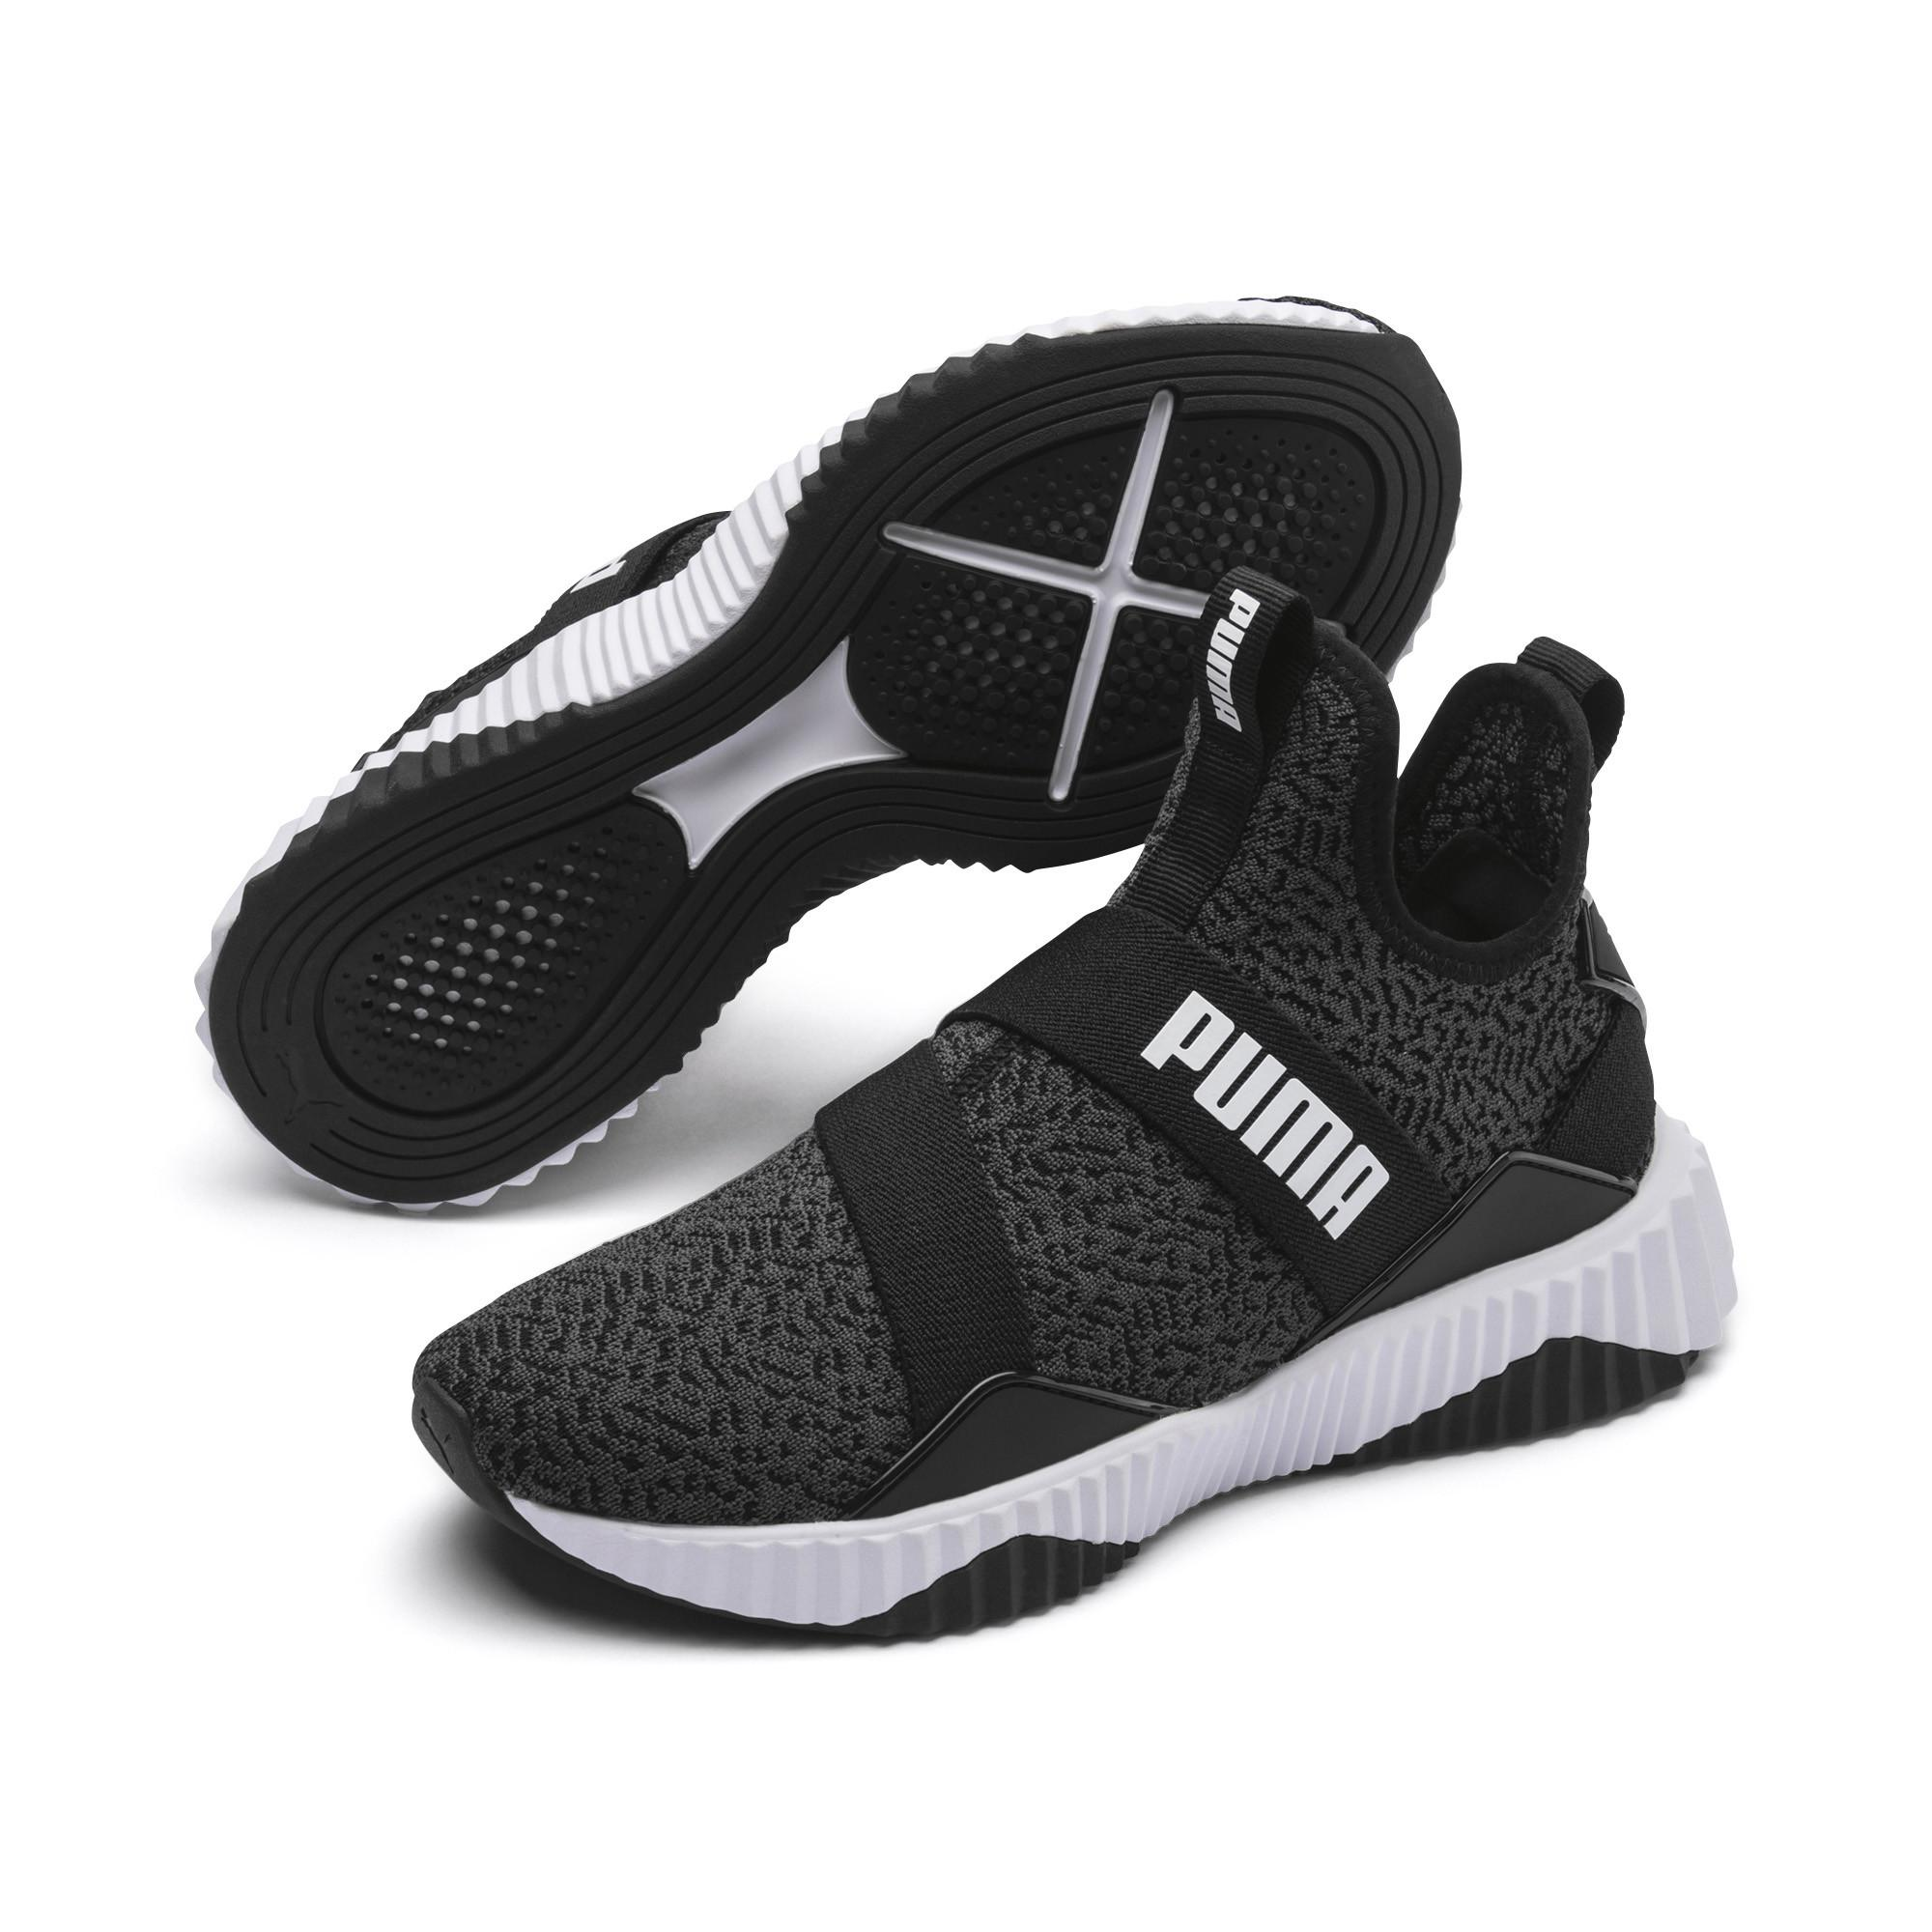 15addca74c3 defy mid varsity trainers black puma la redoute special section ...